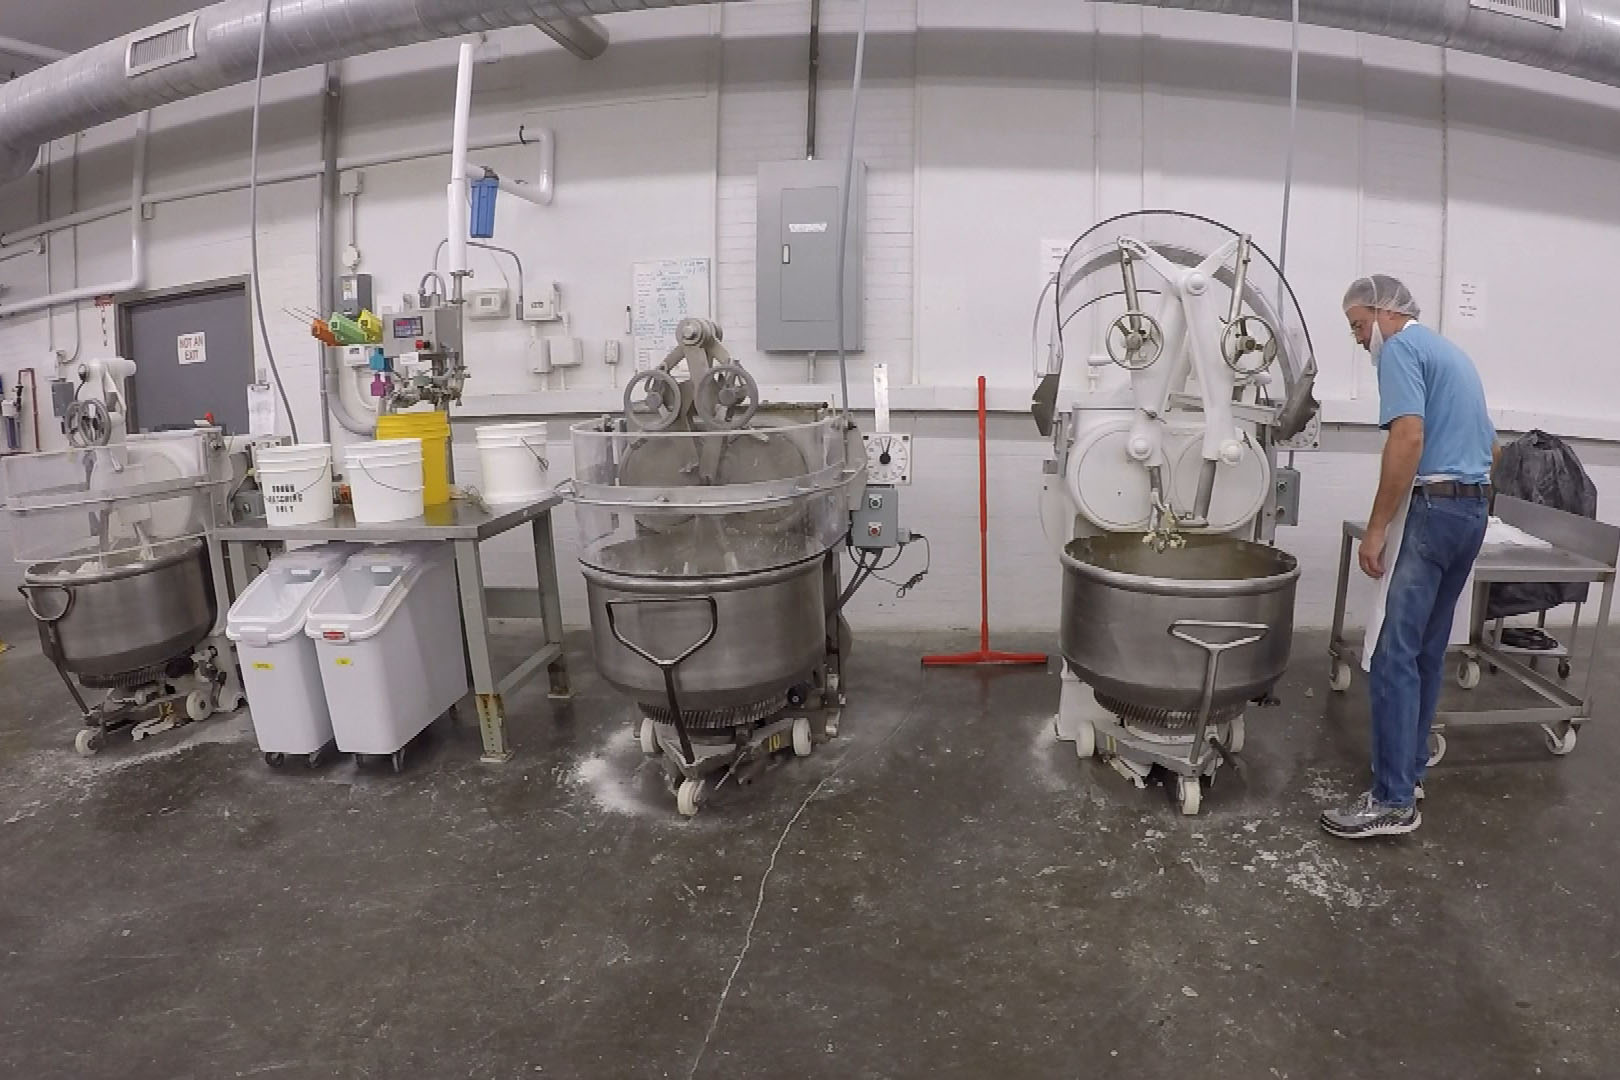 Wick's Pies uses large mixers to emulate how home cooks would mix their pie crusts by hand.